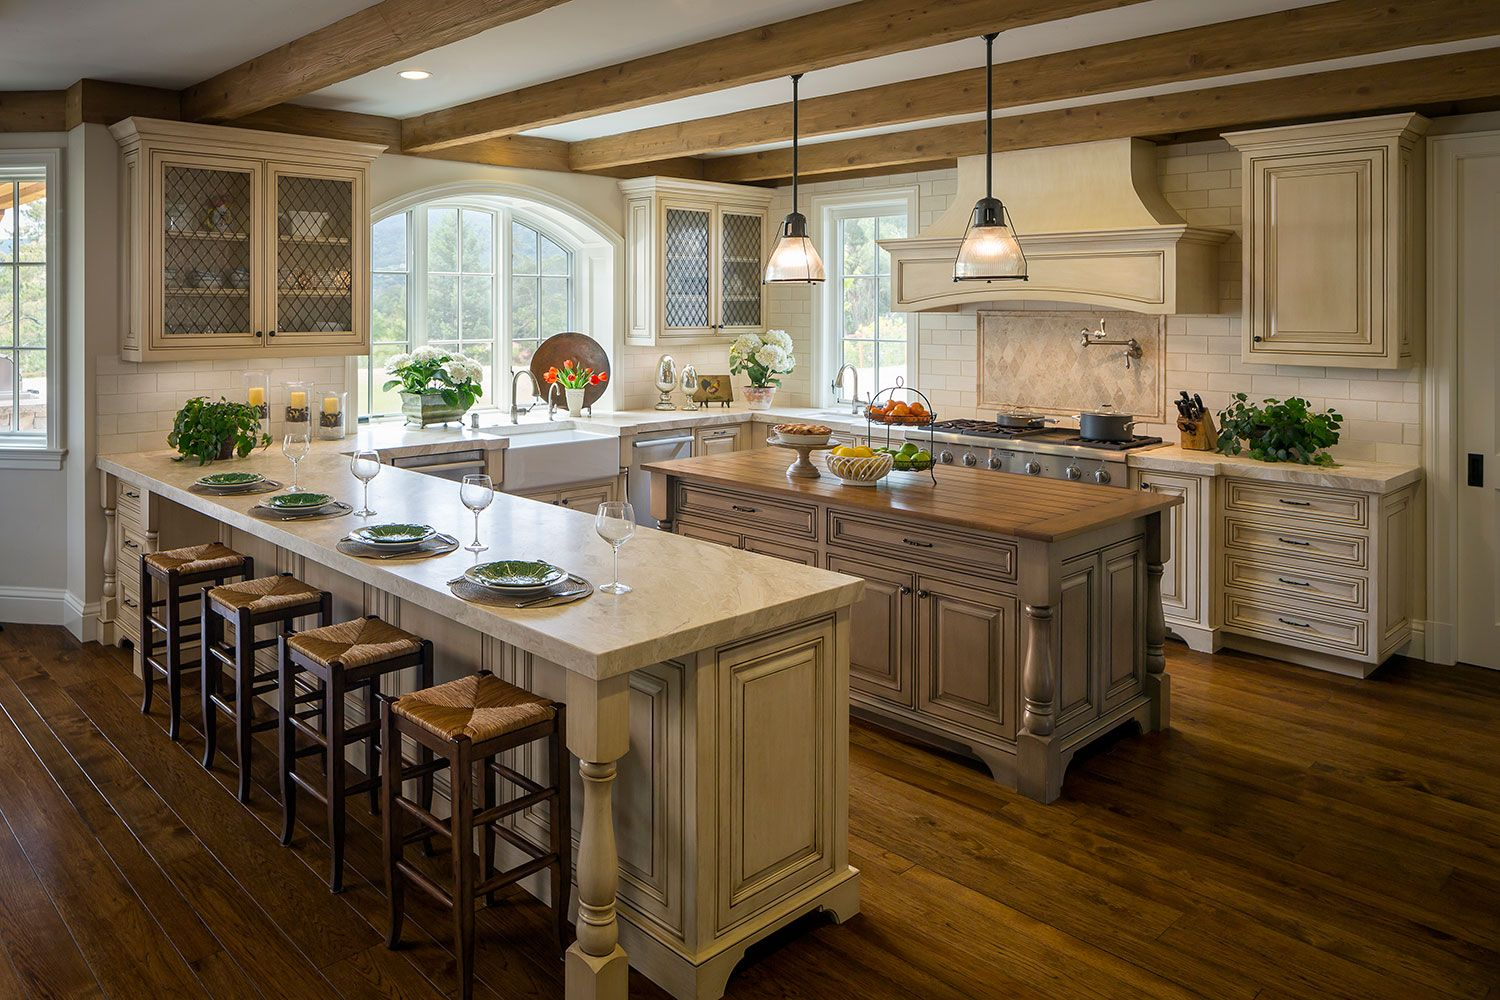 Best 25 country kitchen layouts ideas on pinterest for Country kitchen ideas layouts